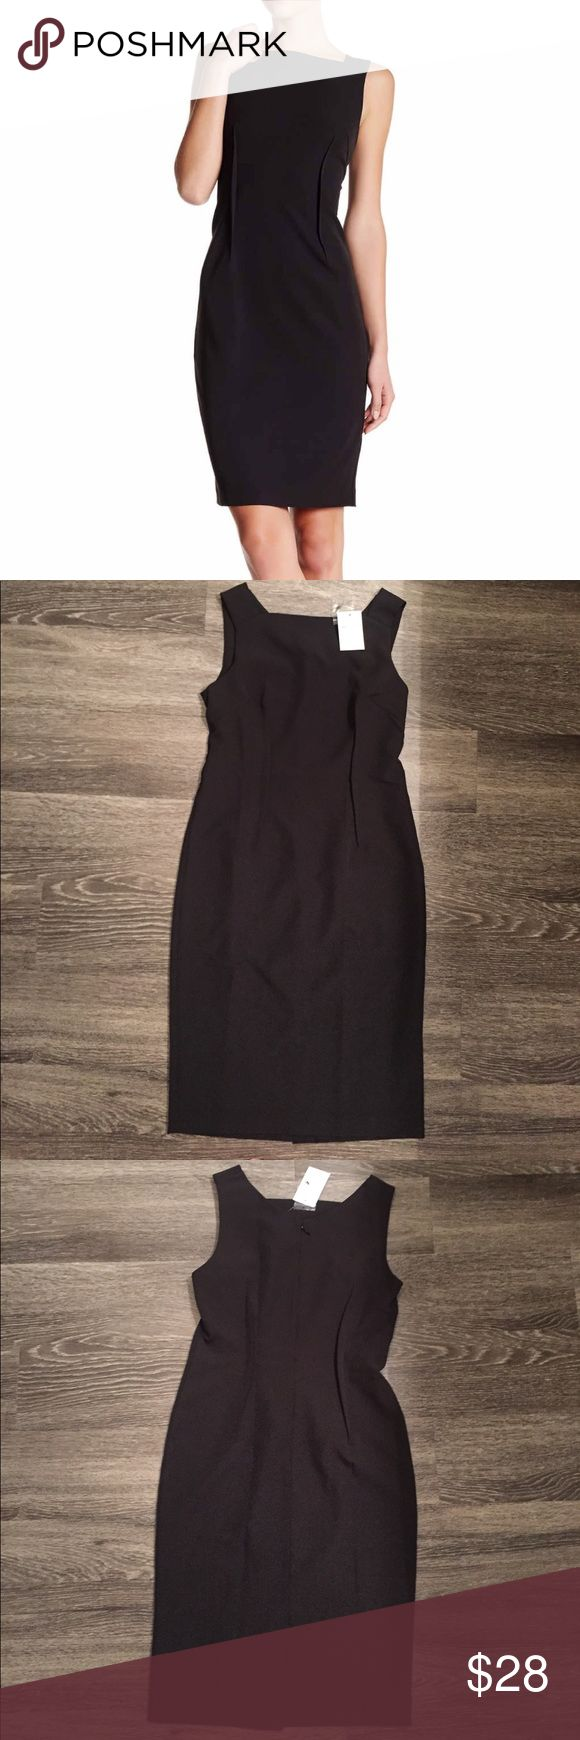 Joe fresh black pencil dress NWT Joe Fresh Dresses